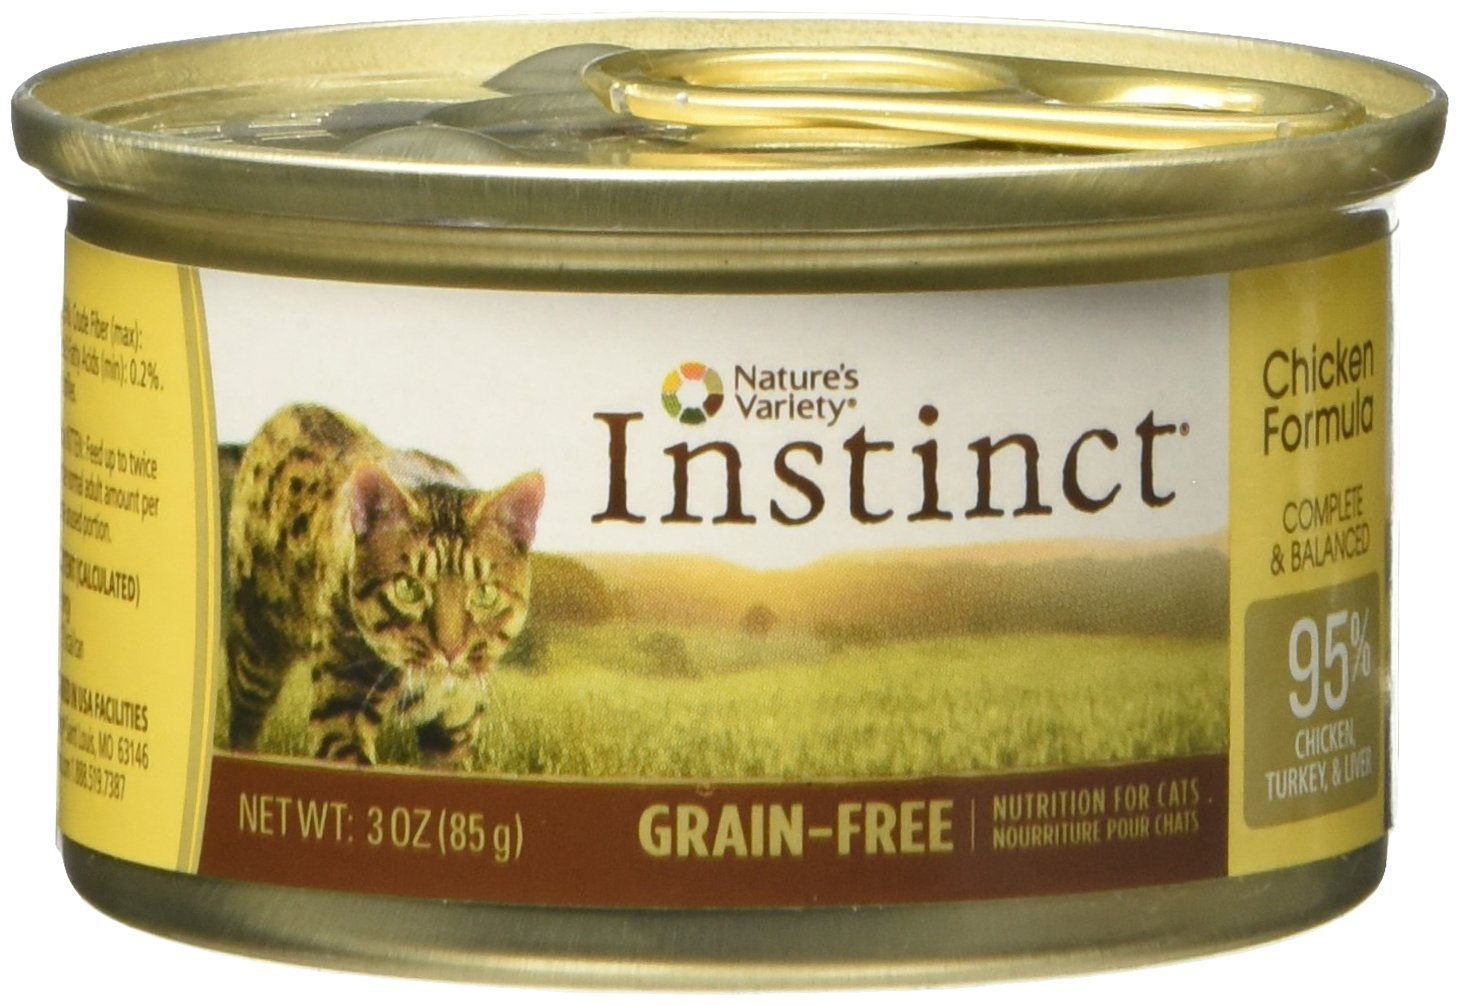 Amazon.com : Natures Variety Instinct Chicken Formula Canned Cat Food 24/3oz Cans : Canned Wet Pet Food : Pet Supplies